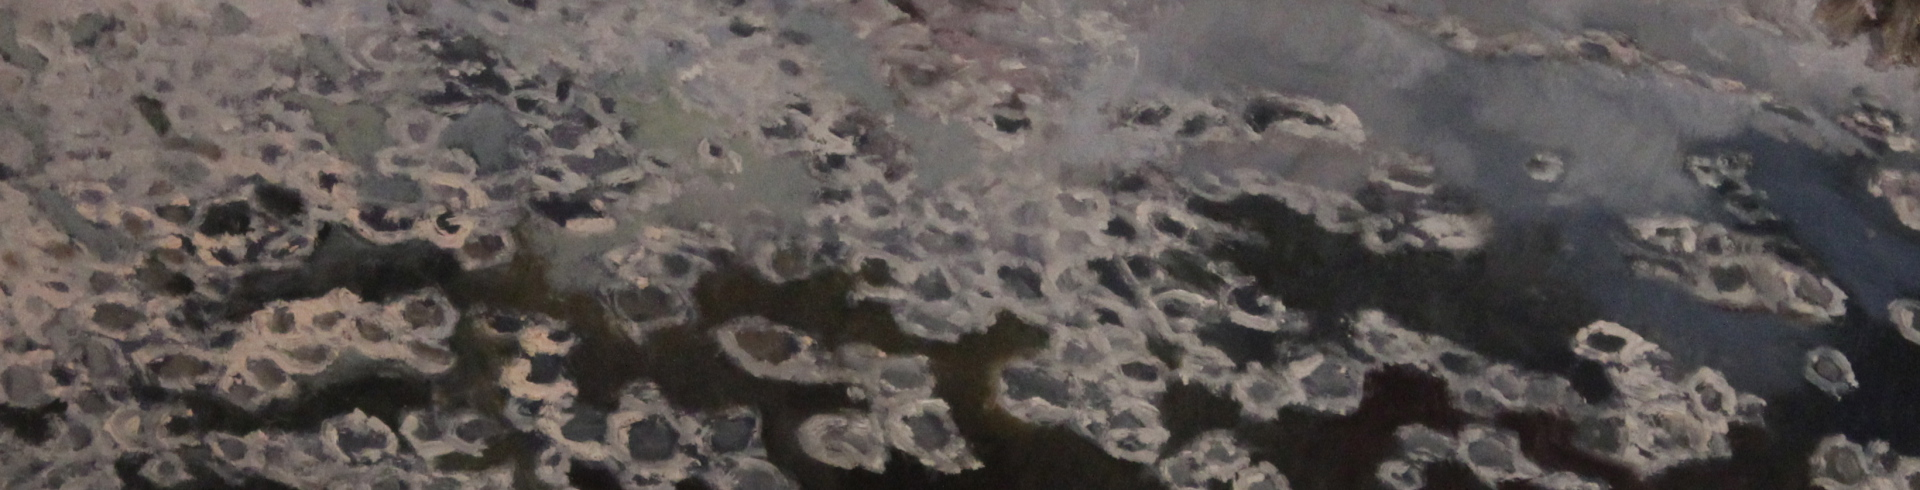 ICE FLOW SERIES - 10X34 - OIL ON PANEL - 2008